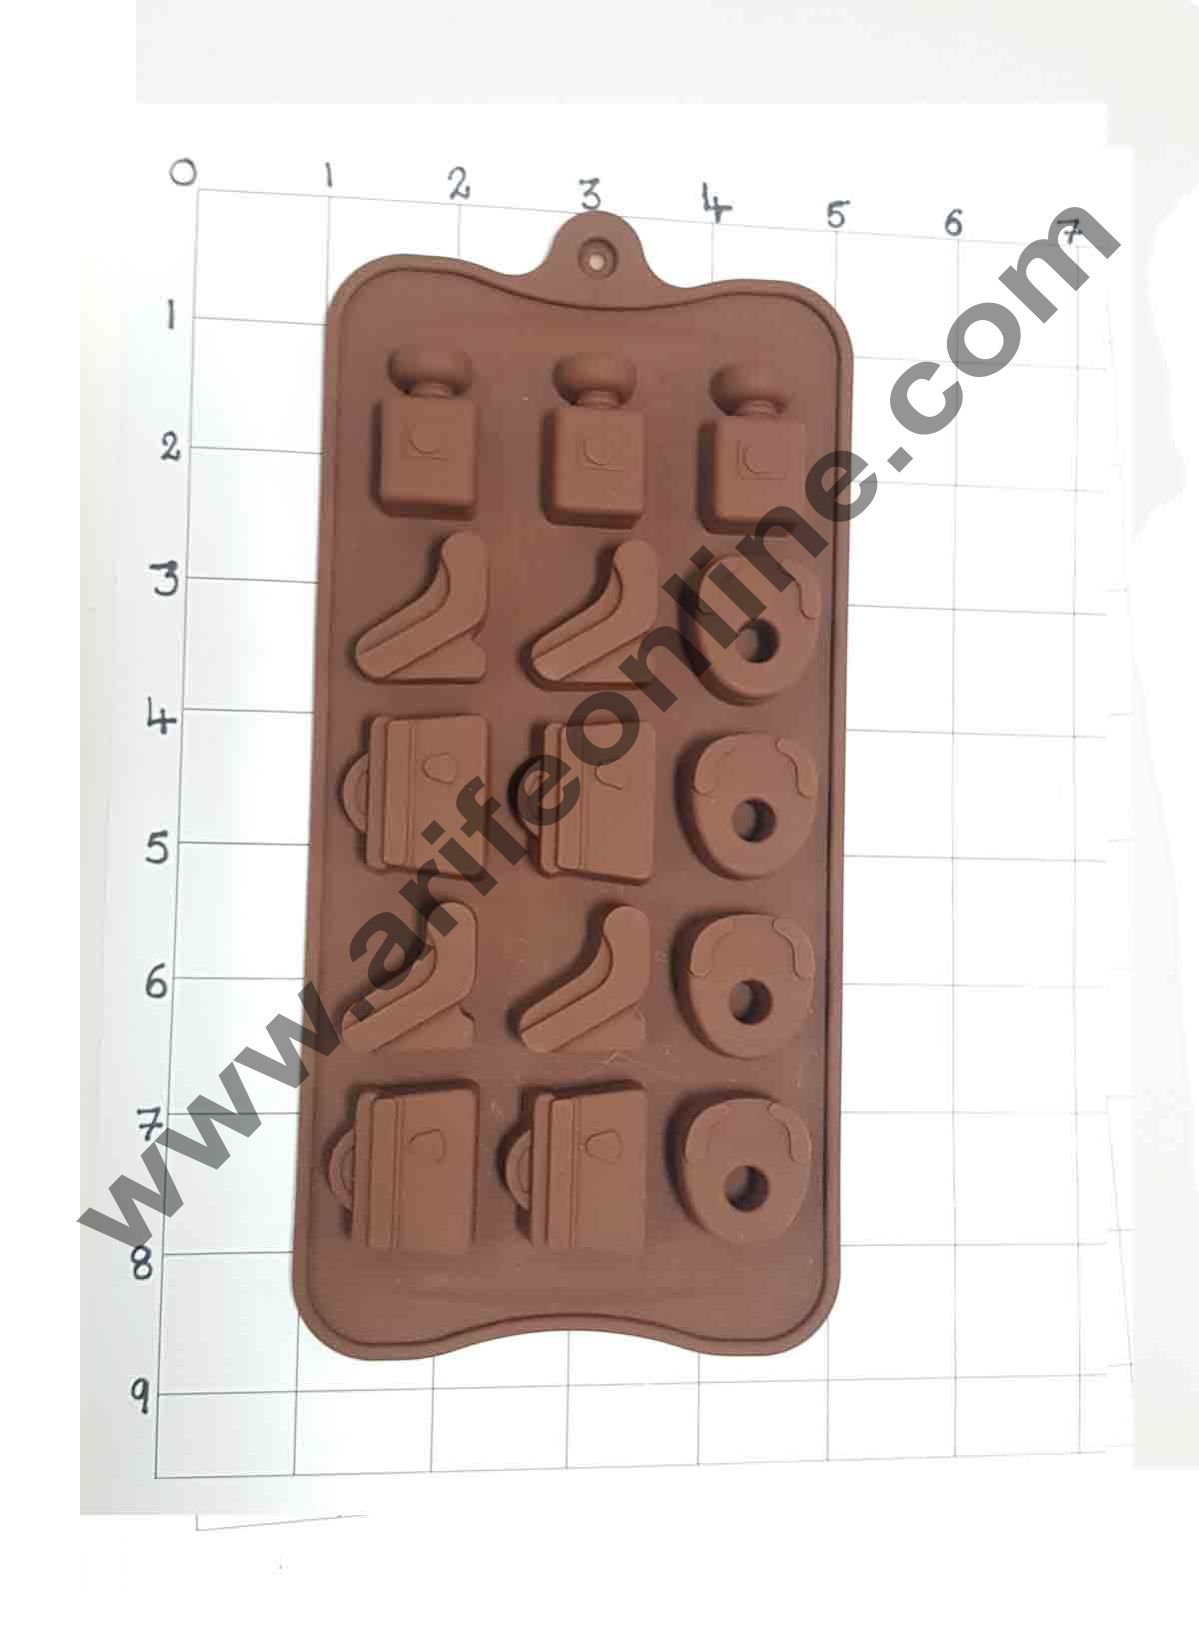 Cake Decor Silicon 15 Cavity New Purse, Sandal and Prefume Bottle Design Brown Chocolate Mould, Ice Mould, Chocolate Decorating Mould